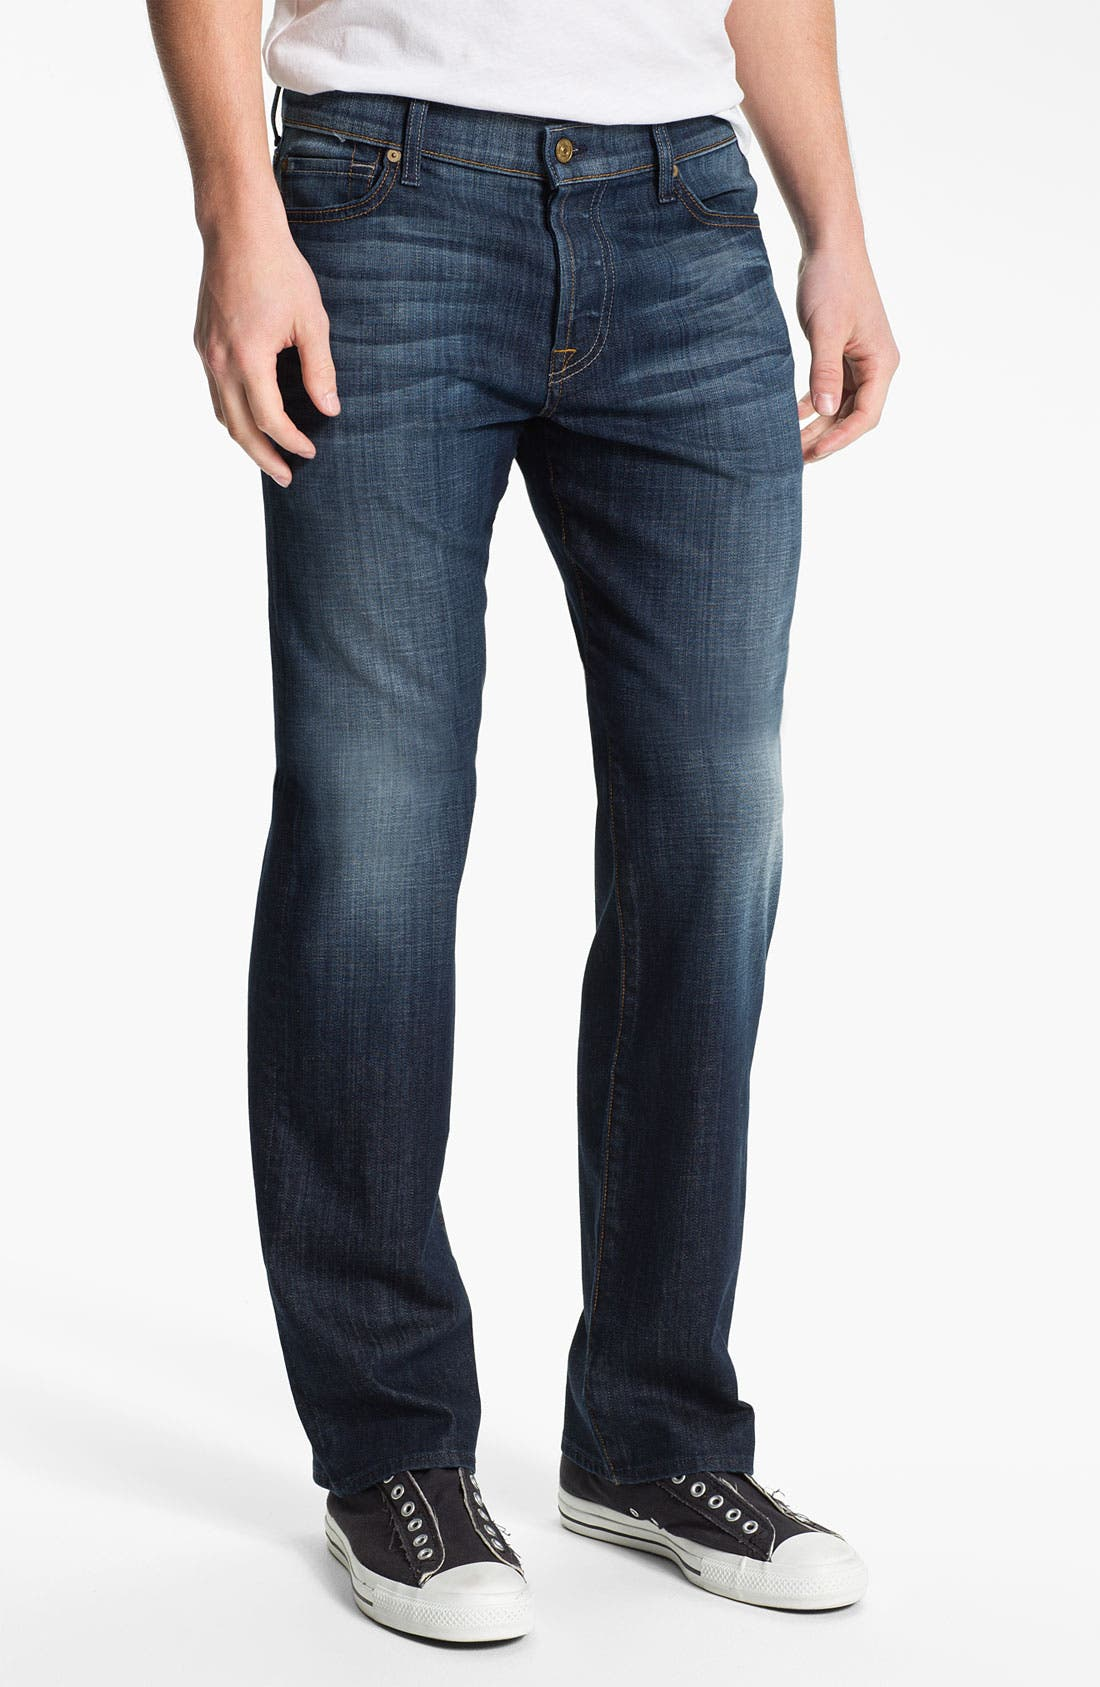 Alternate Image 2  - 7 For All Mankind® 'Standard' Straight Leg Jeans (Worn L.A. Dark)